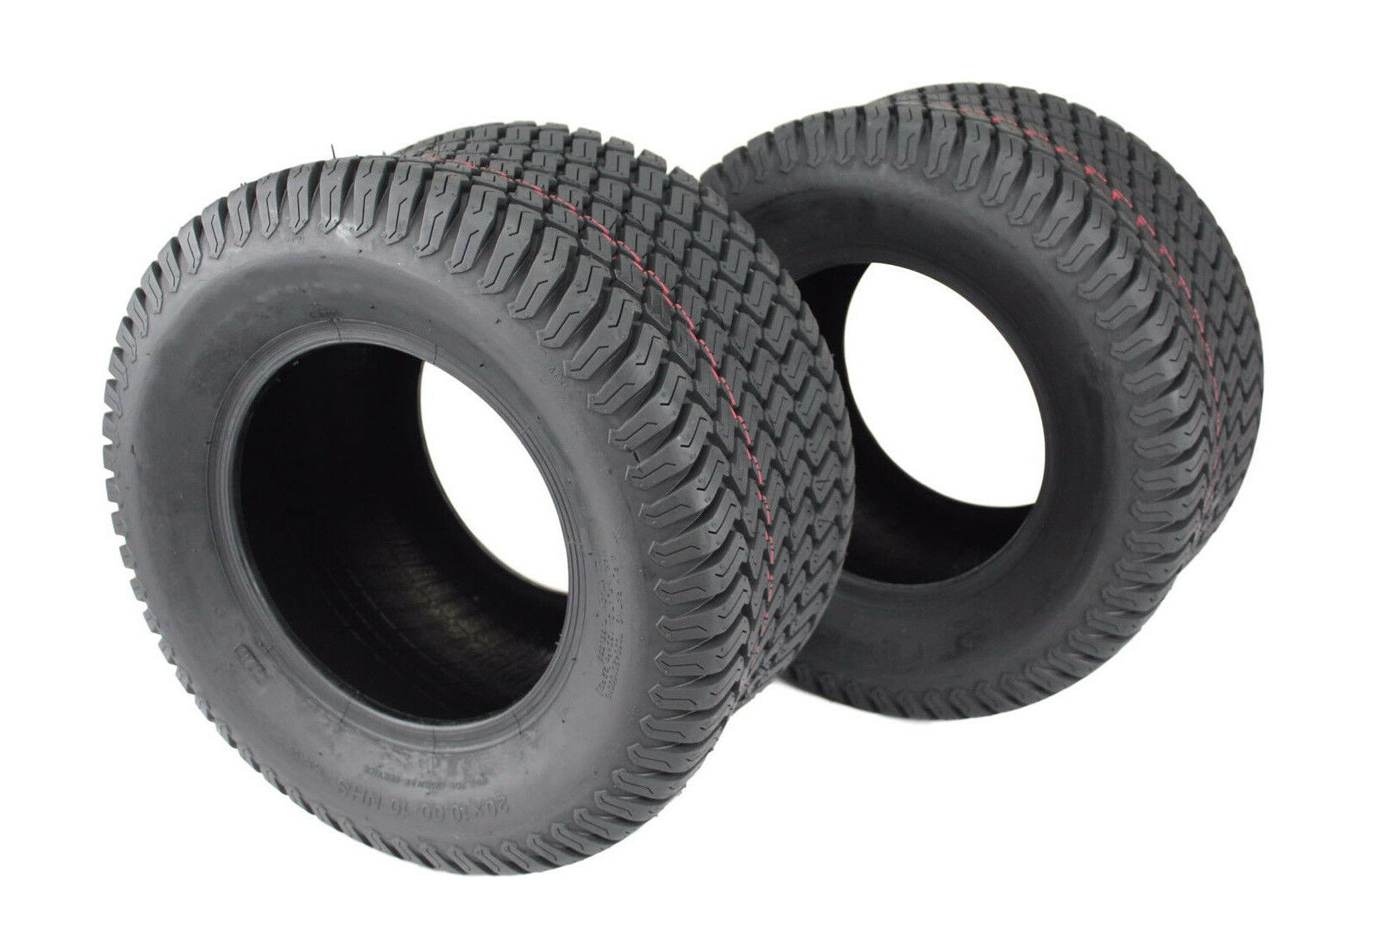 Set of 2 tubeless 4 ply tires 20x10.00-10 replace Carlisle 51141